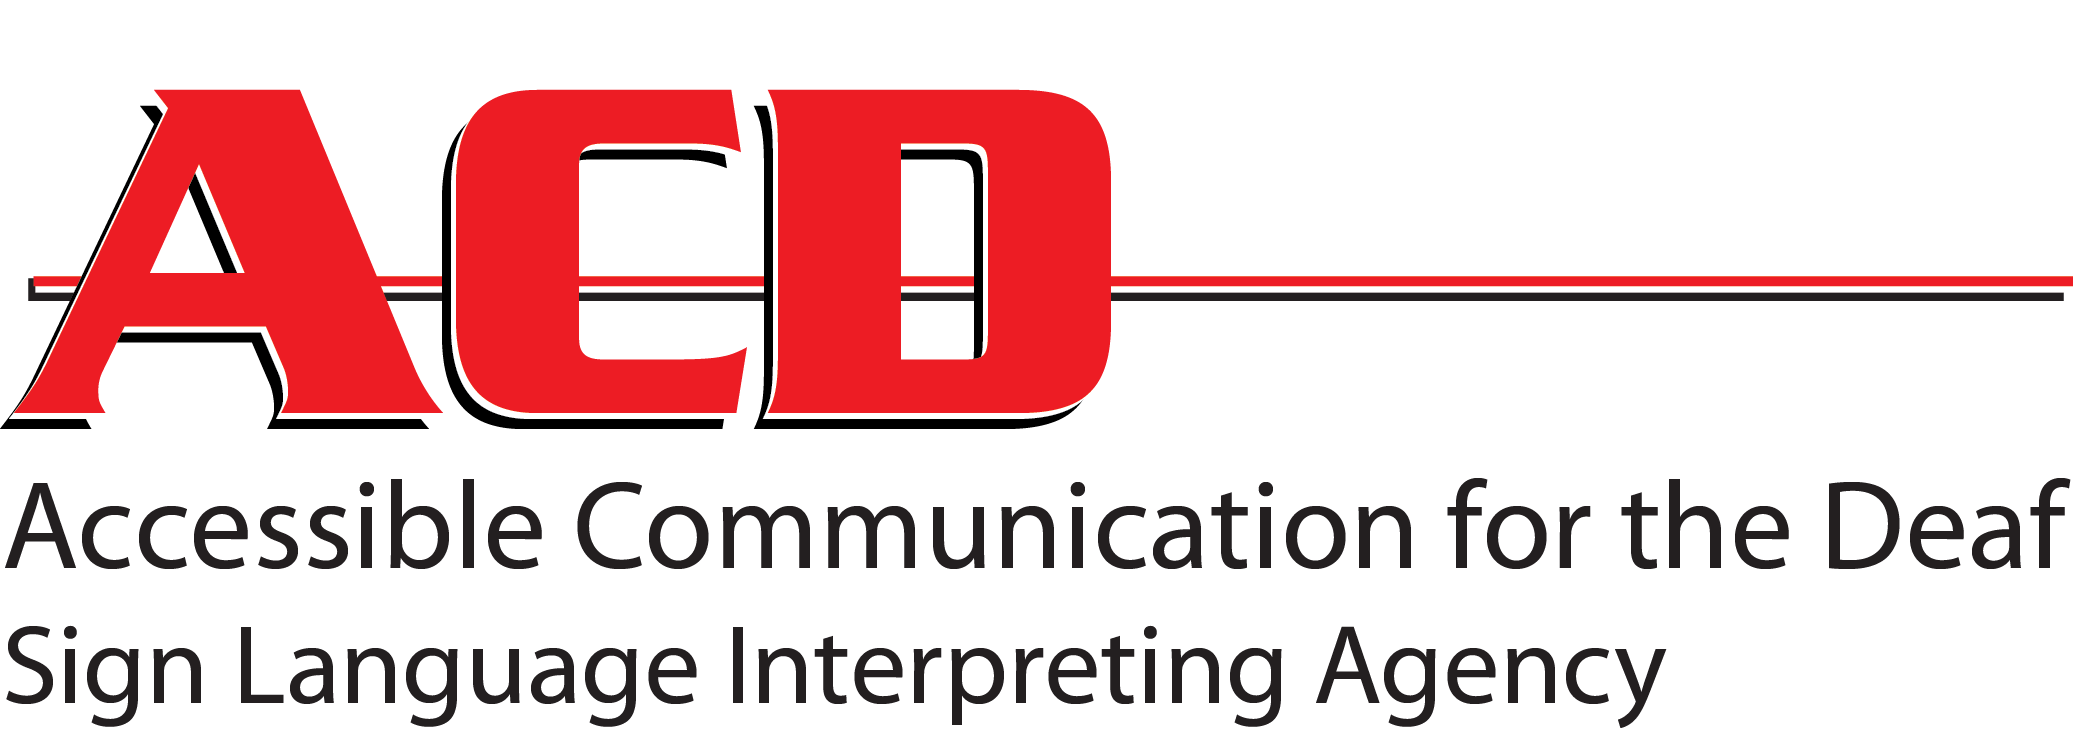 Accessible Communication for the Deaf logo